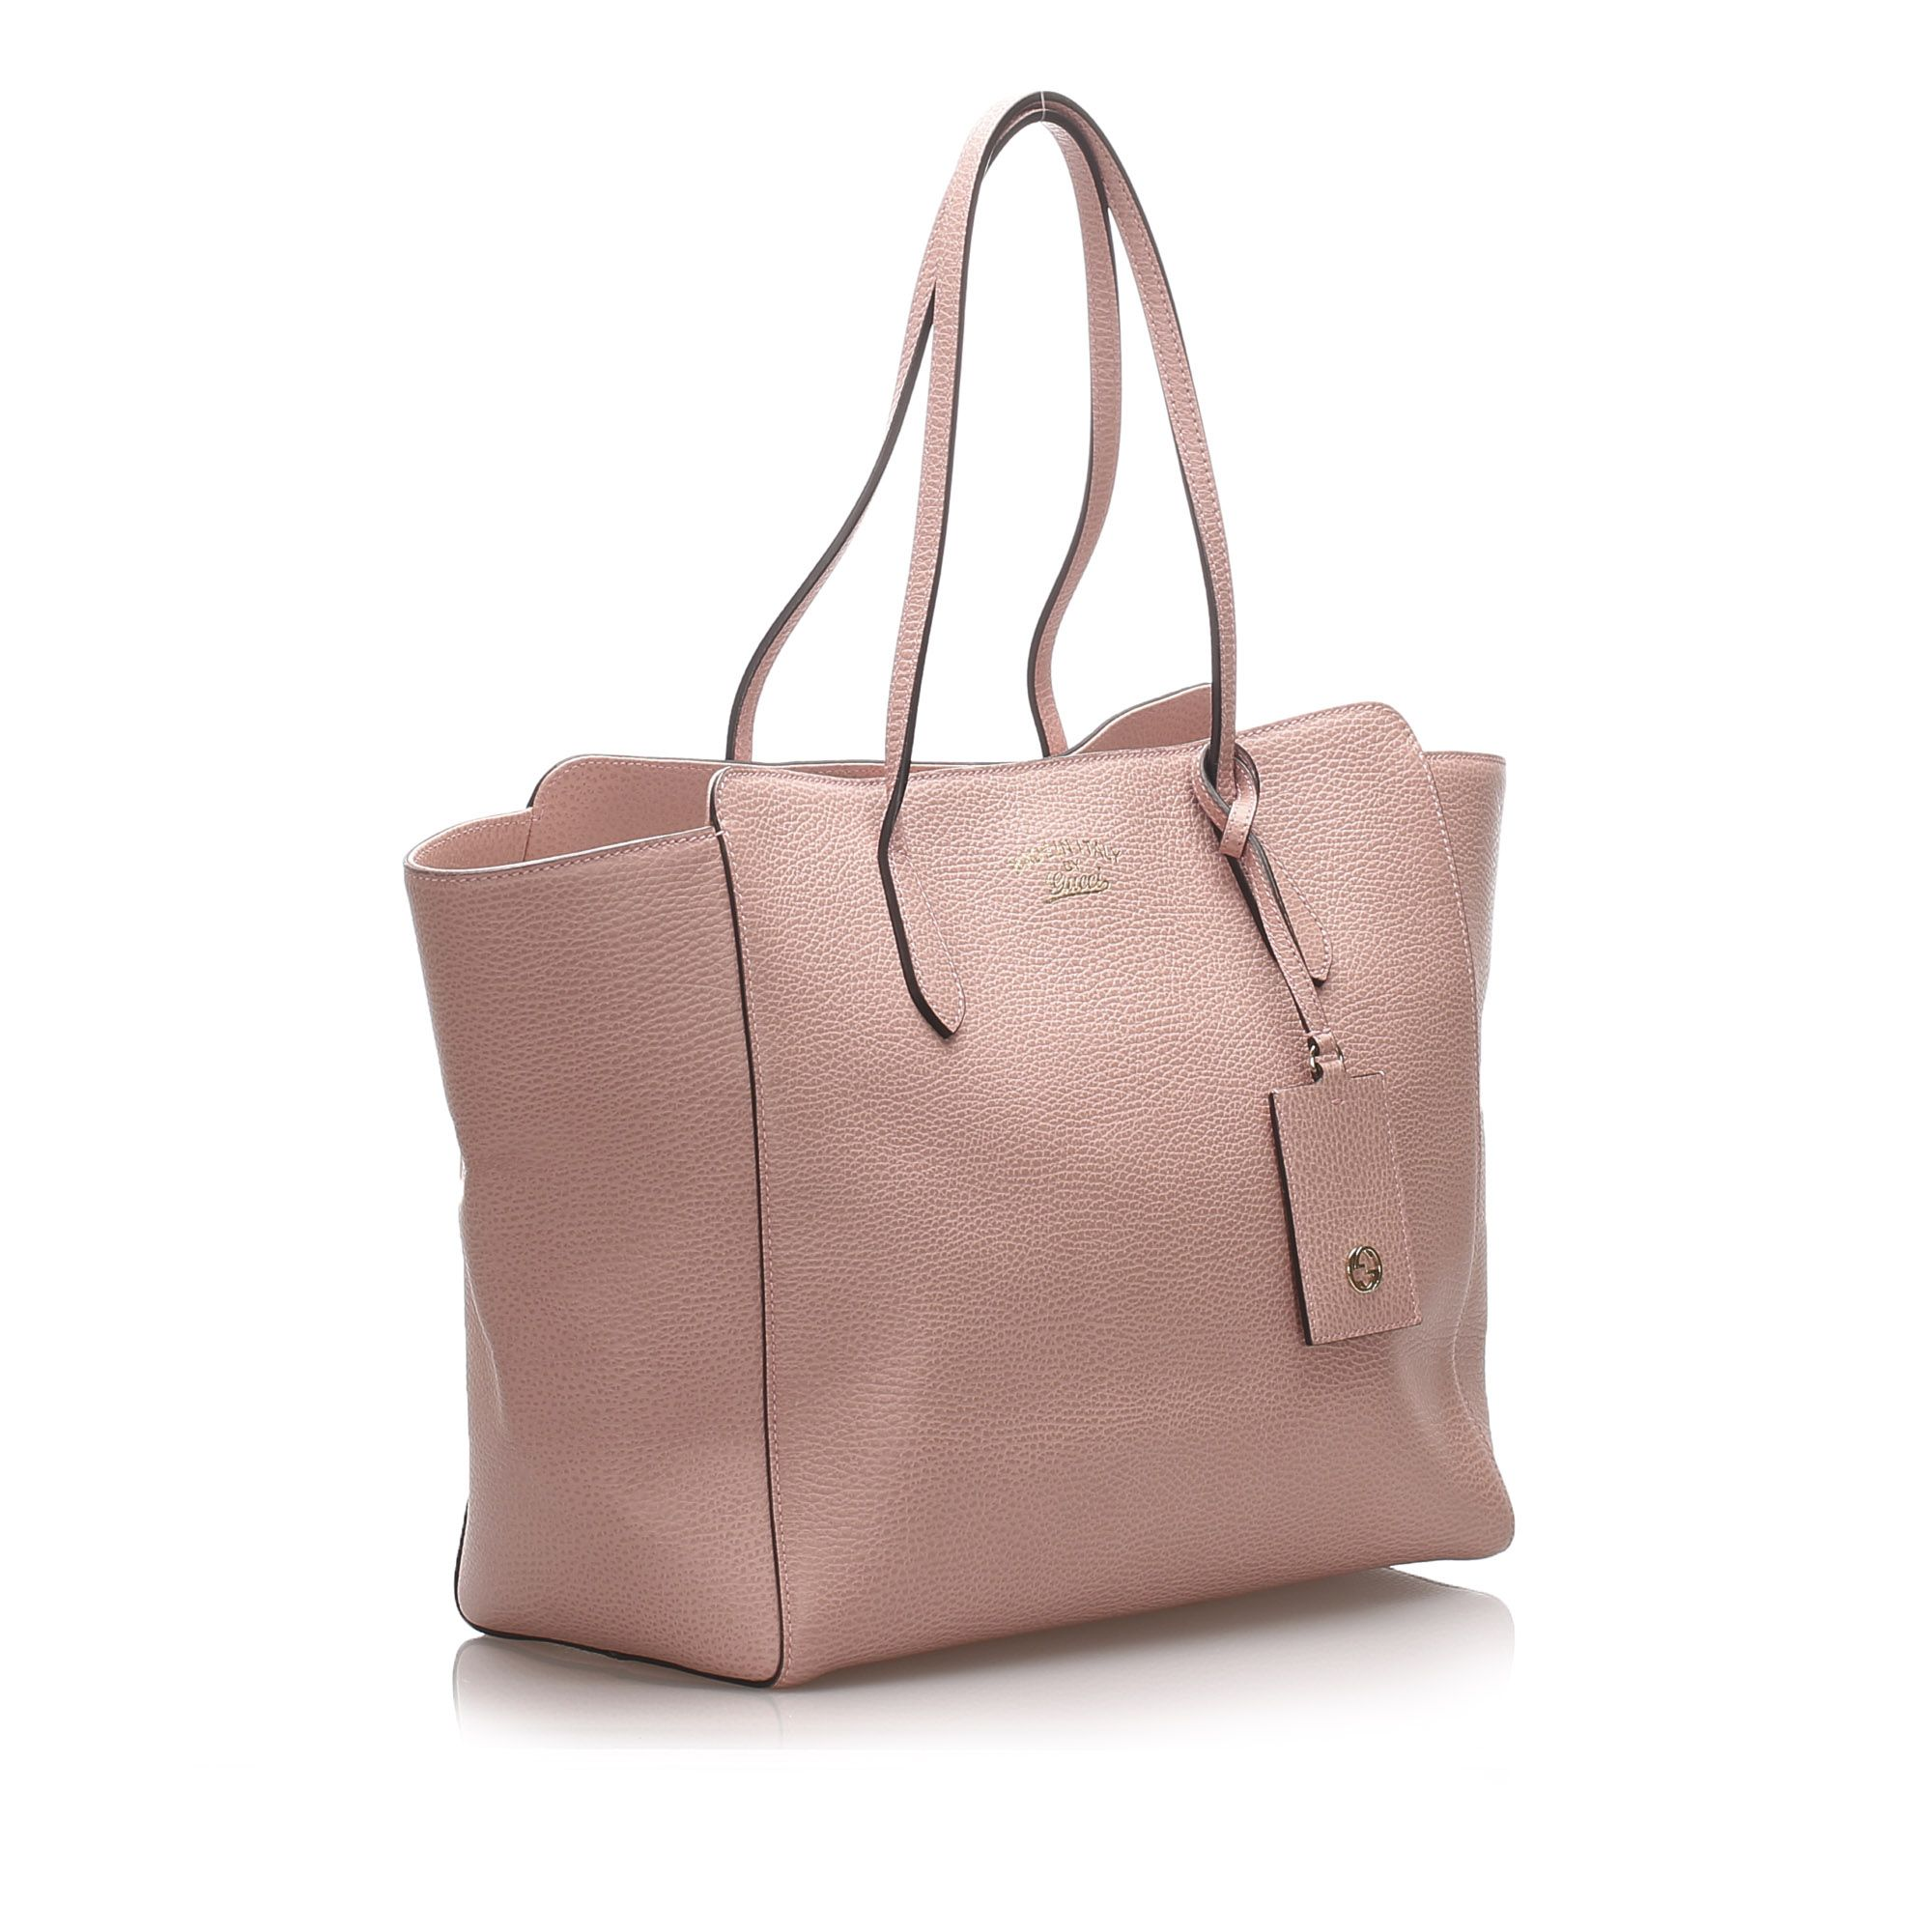 Vintage Gucci Leather Swing Tote Bag Pink